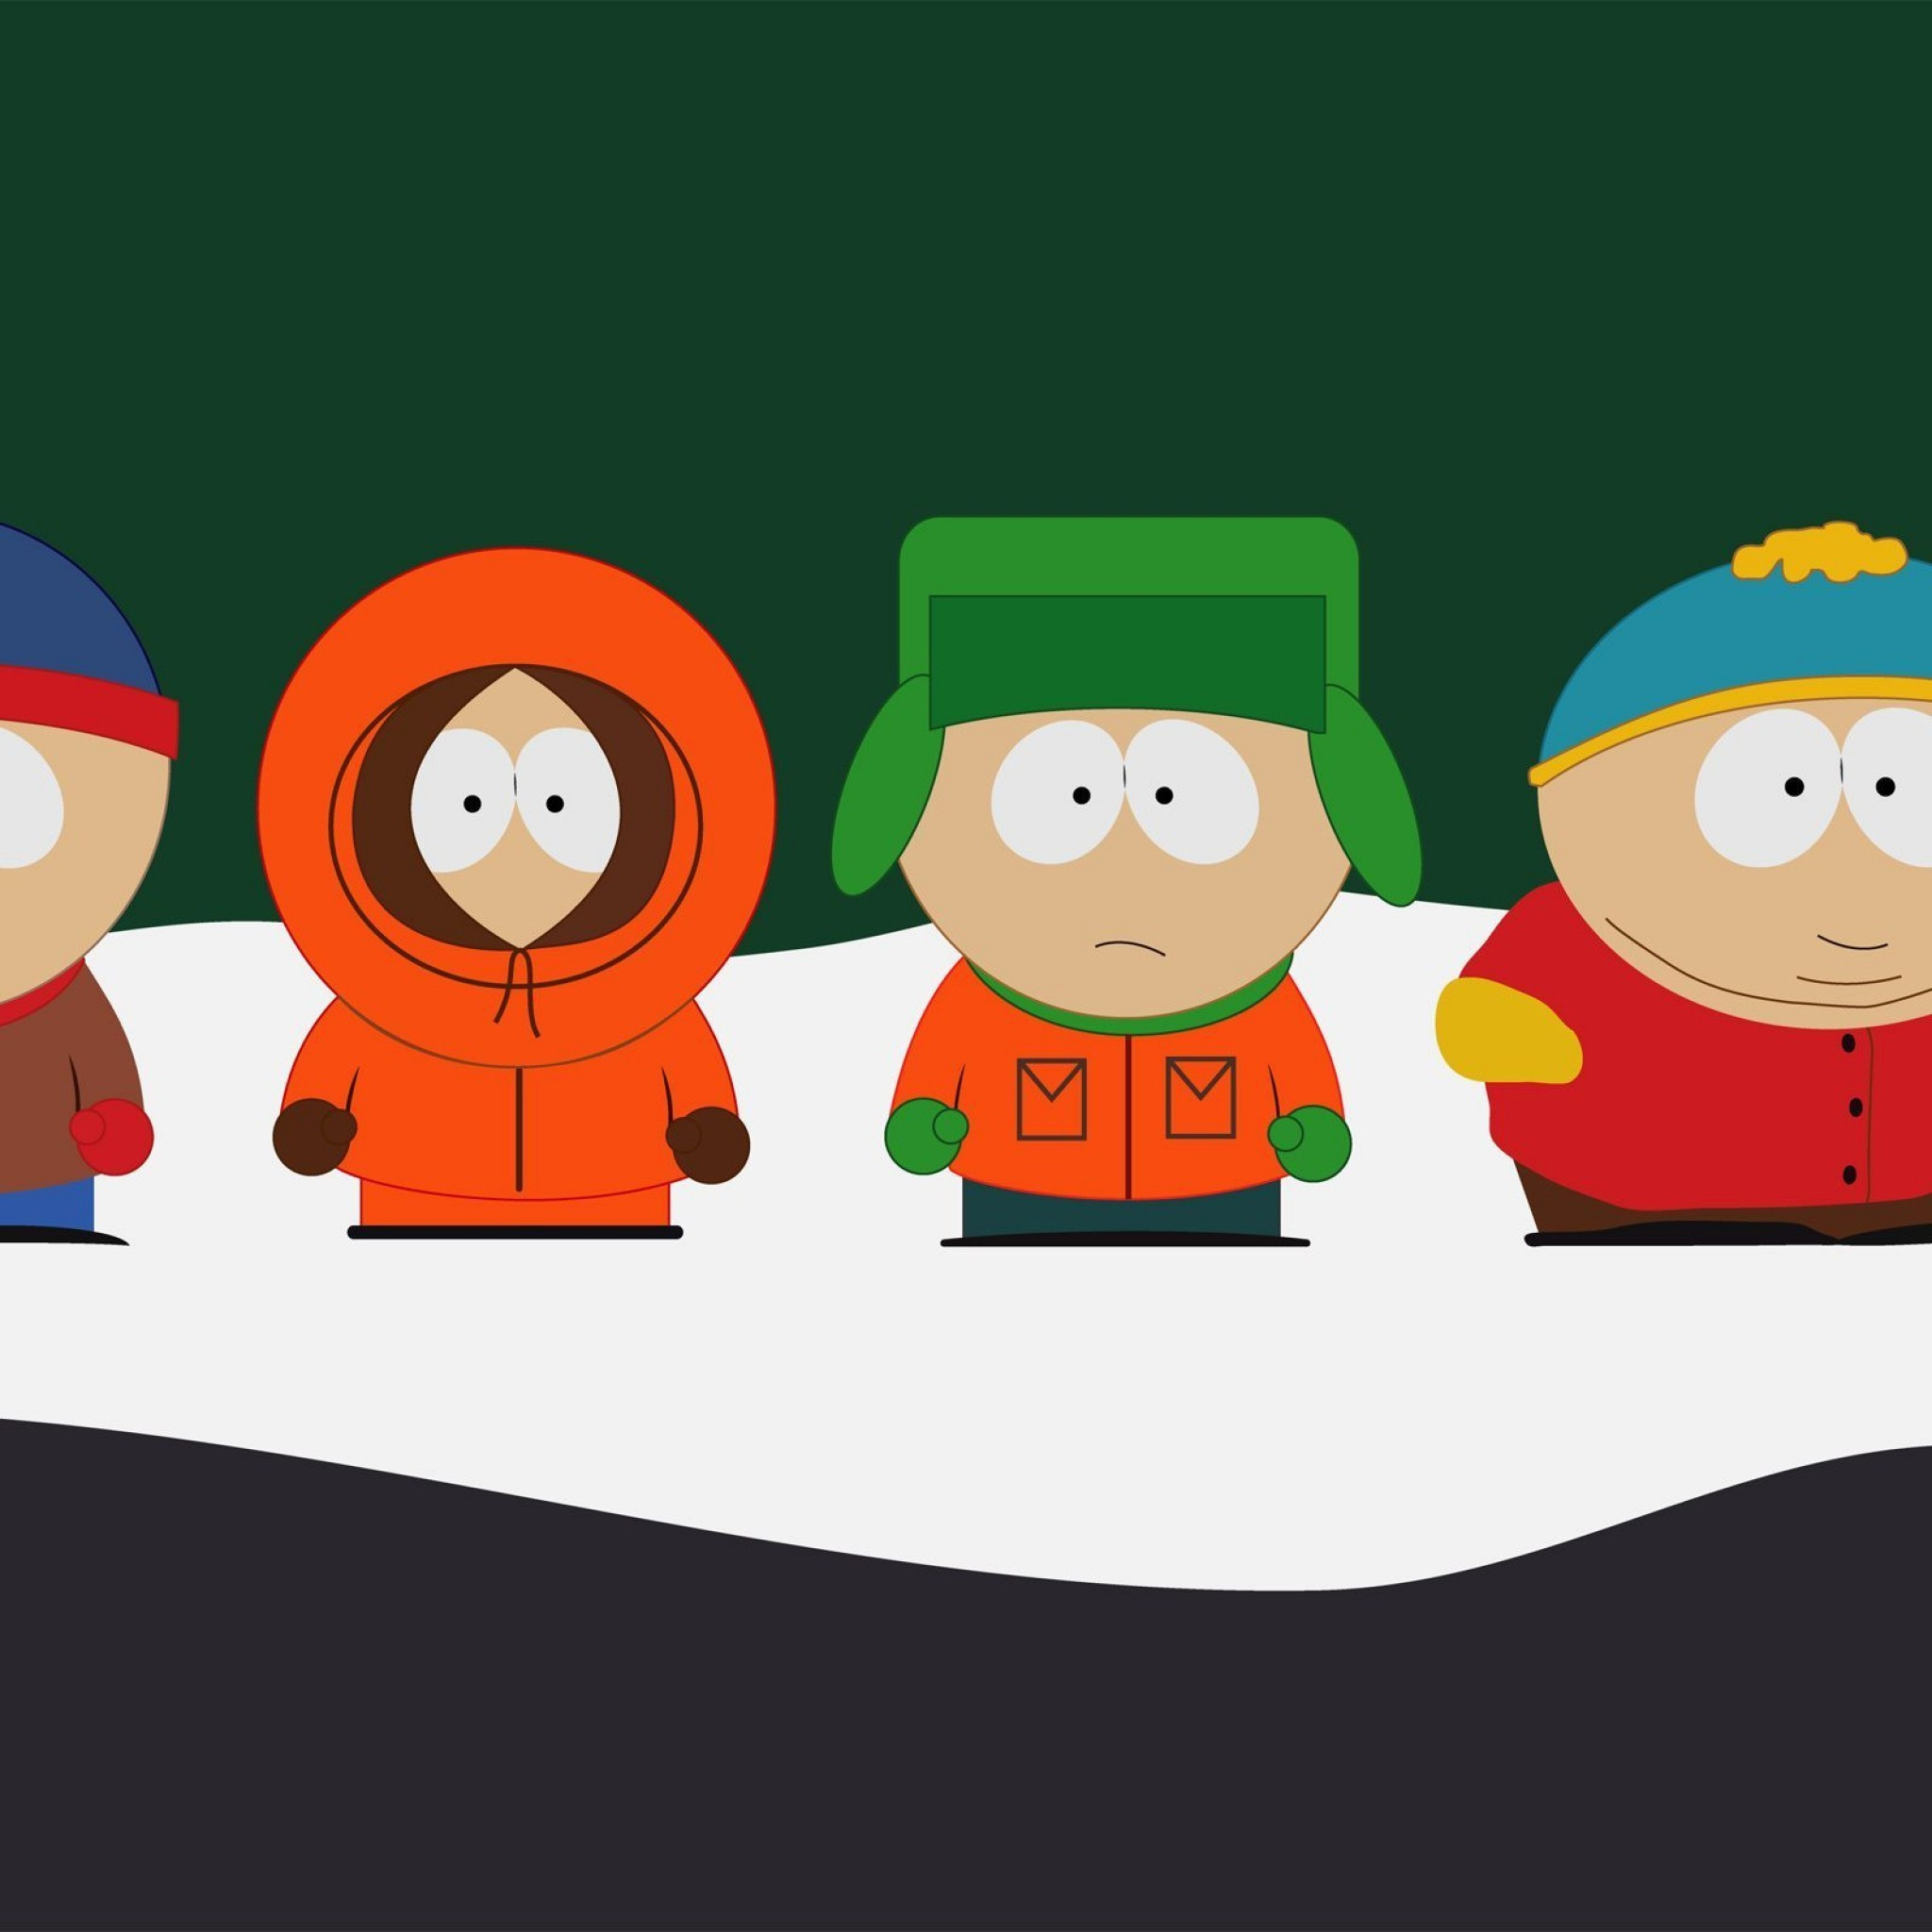 2048x2048 South Park Wallpaper iPhone